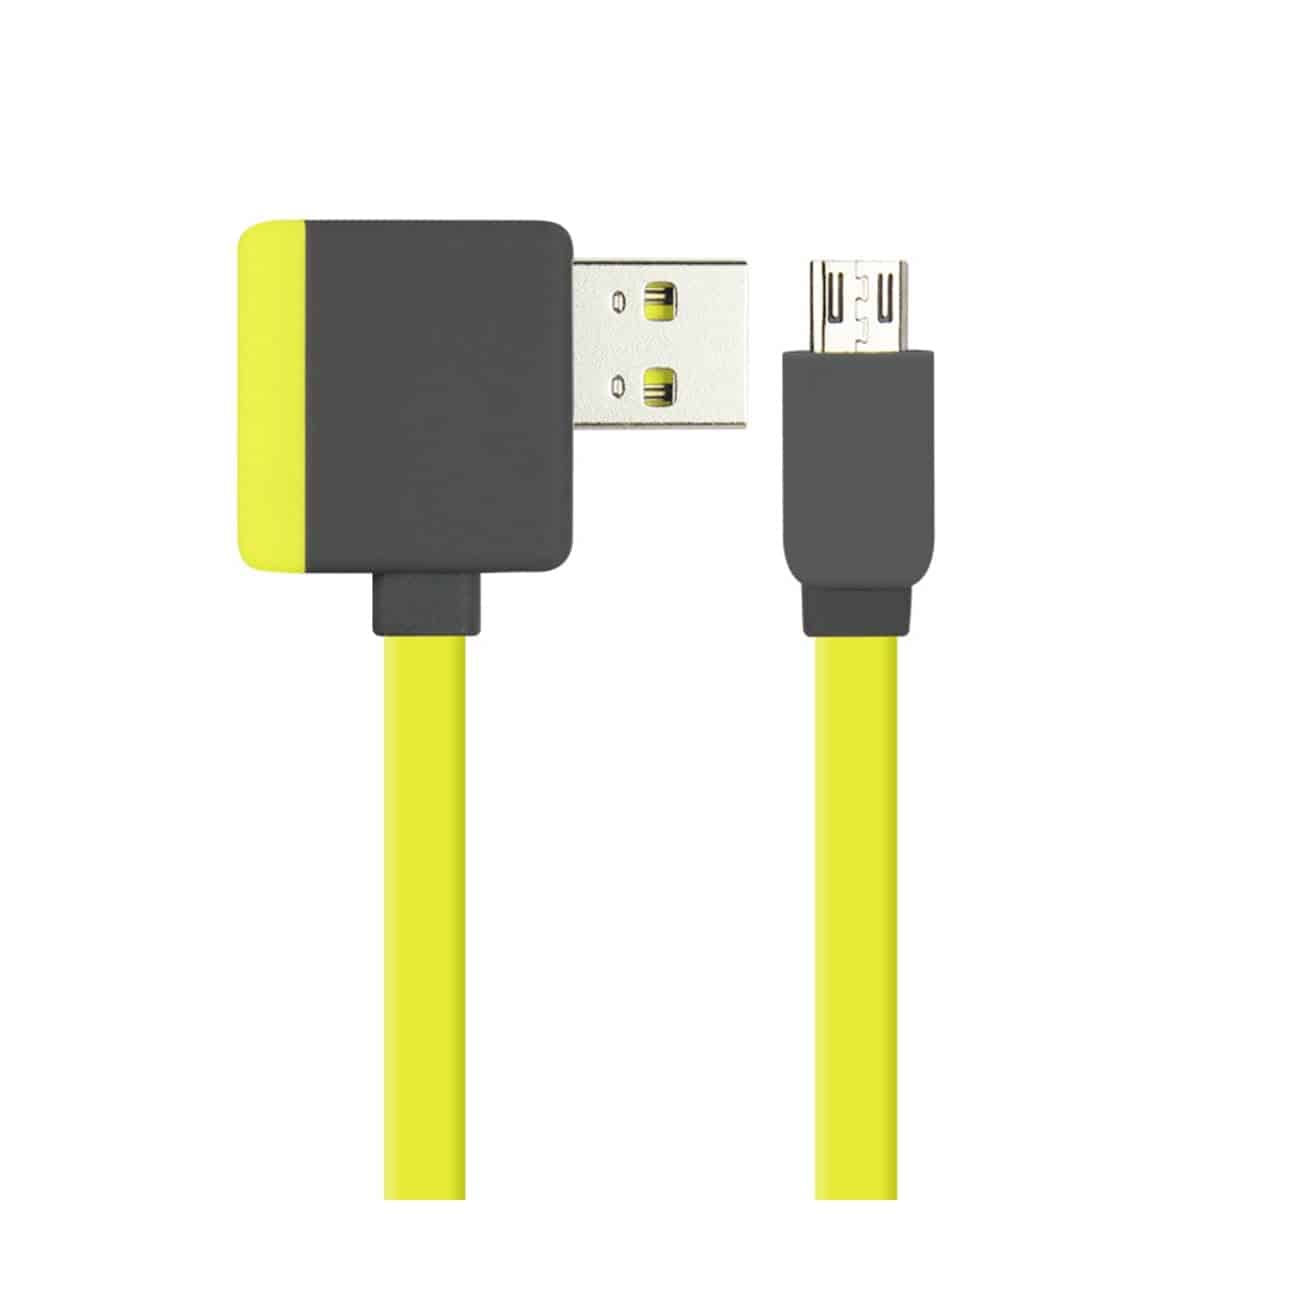 MICRO USB PIGGYBACK FLAT LIBERATOR USB CABLE 3.2FT IN YELLOW